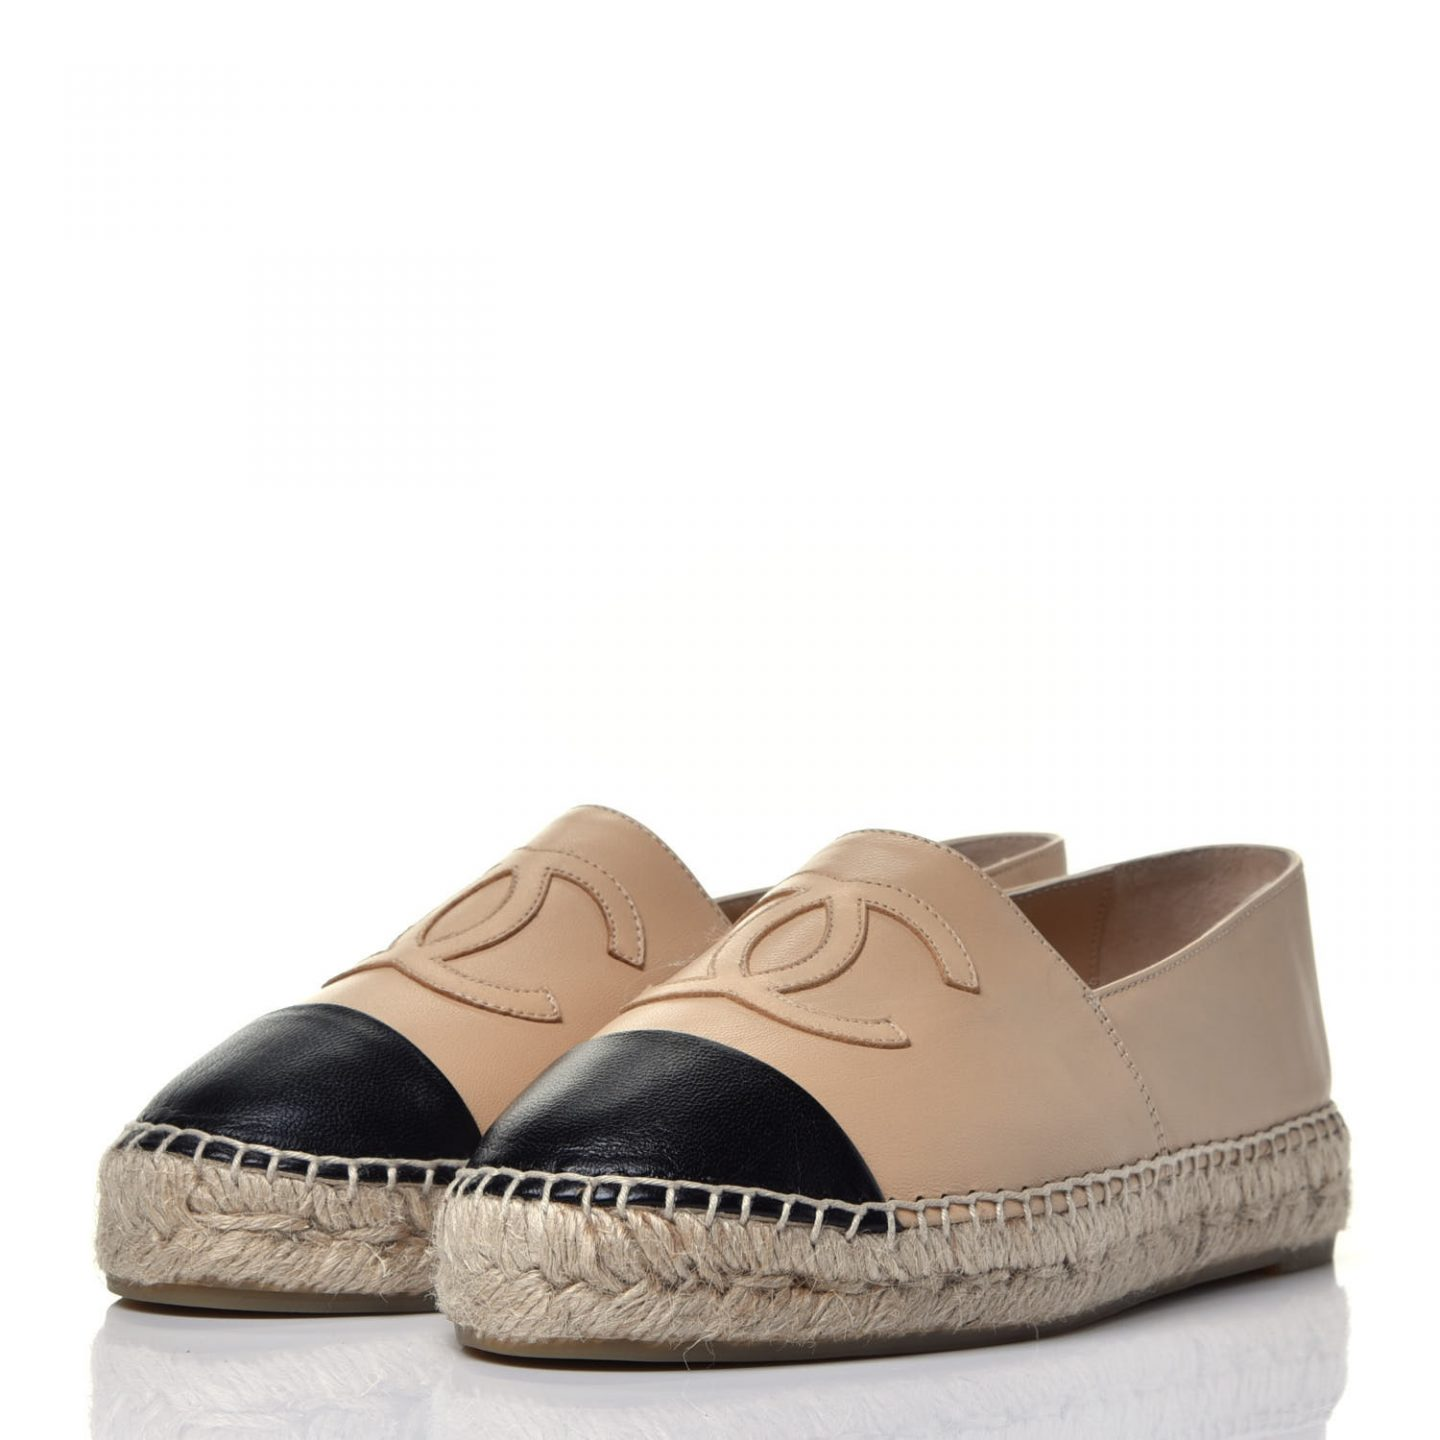 Two-tone Chanel lambskin espadrilles by Fashionphile